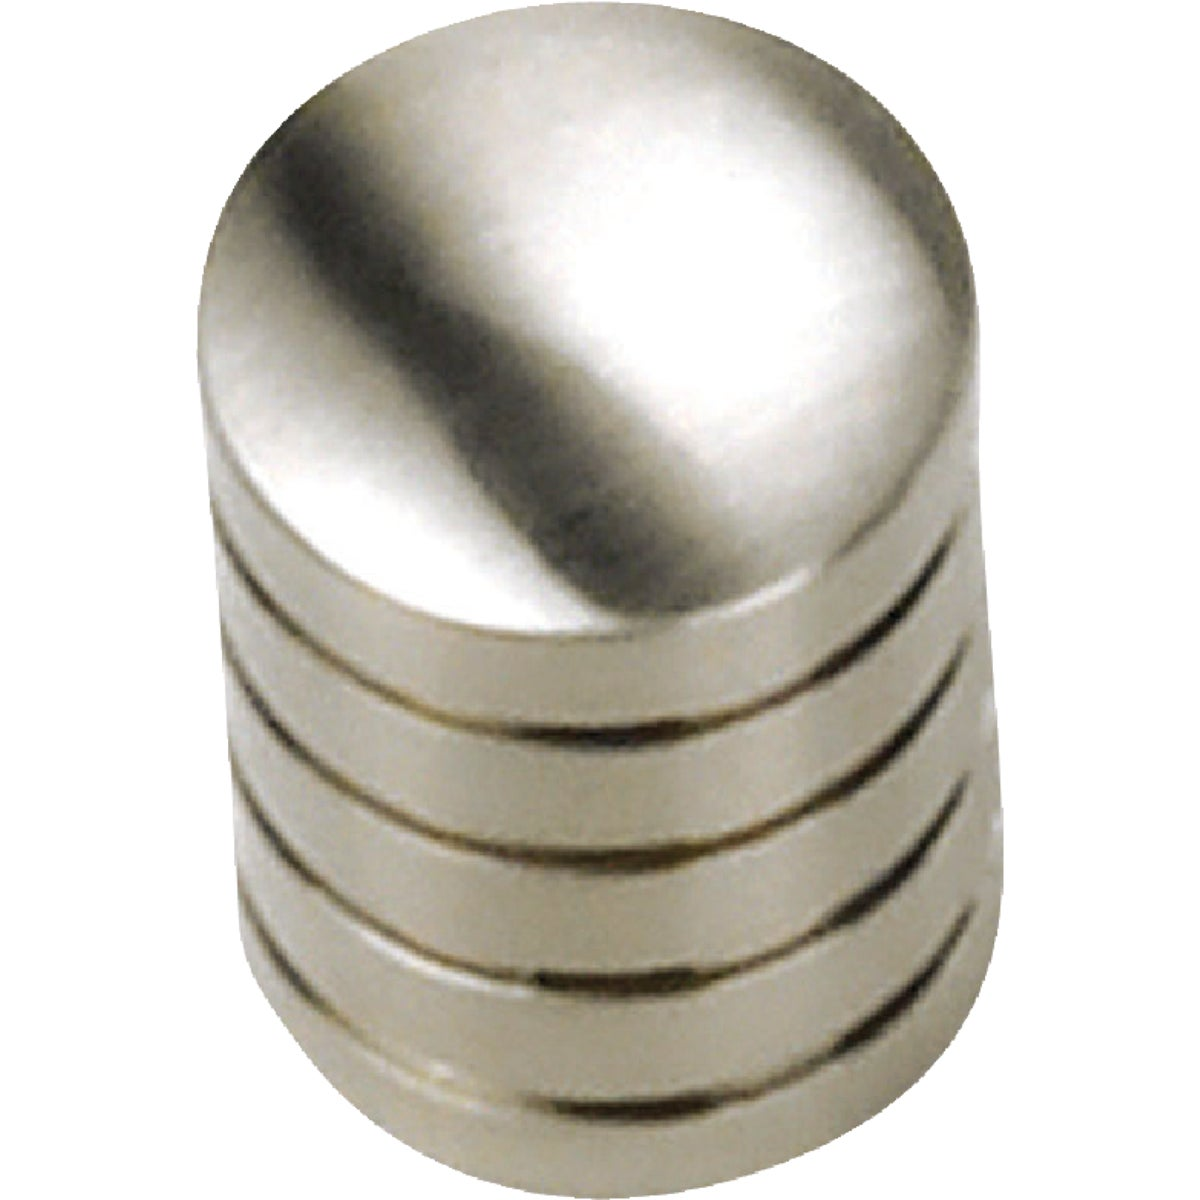 "5/8"" BRSH STN NKL KNOB - 26259 by Laurey Co"